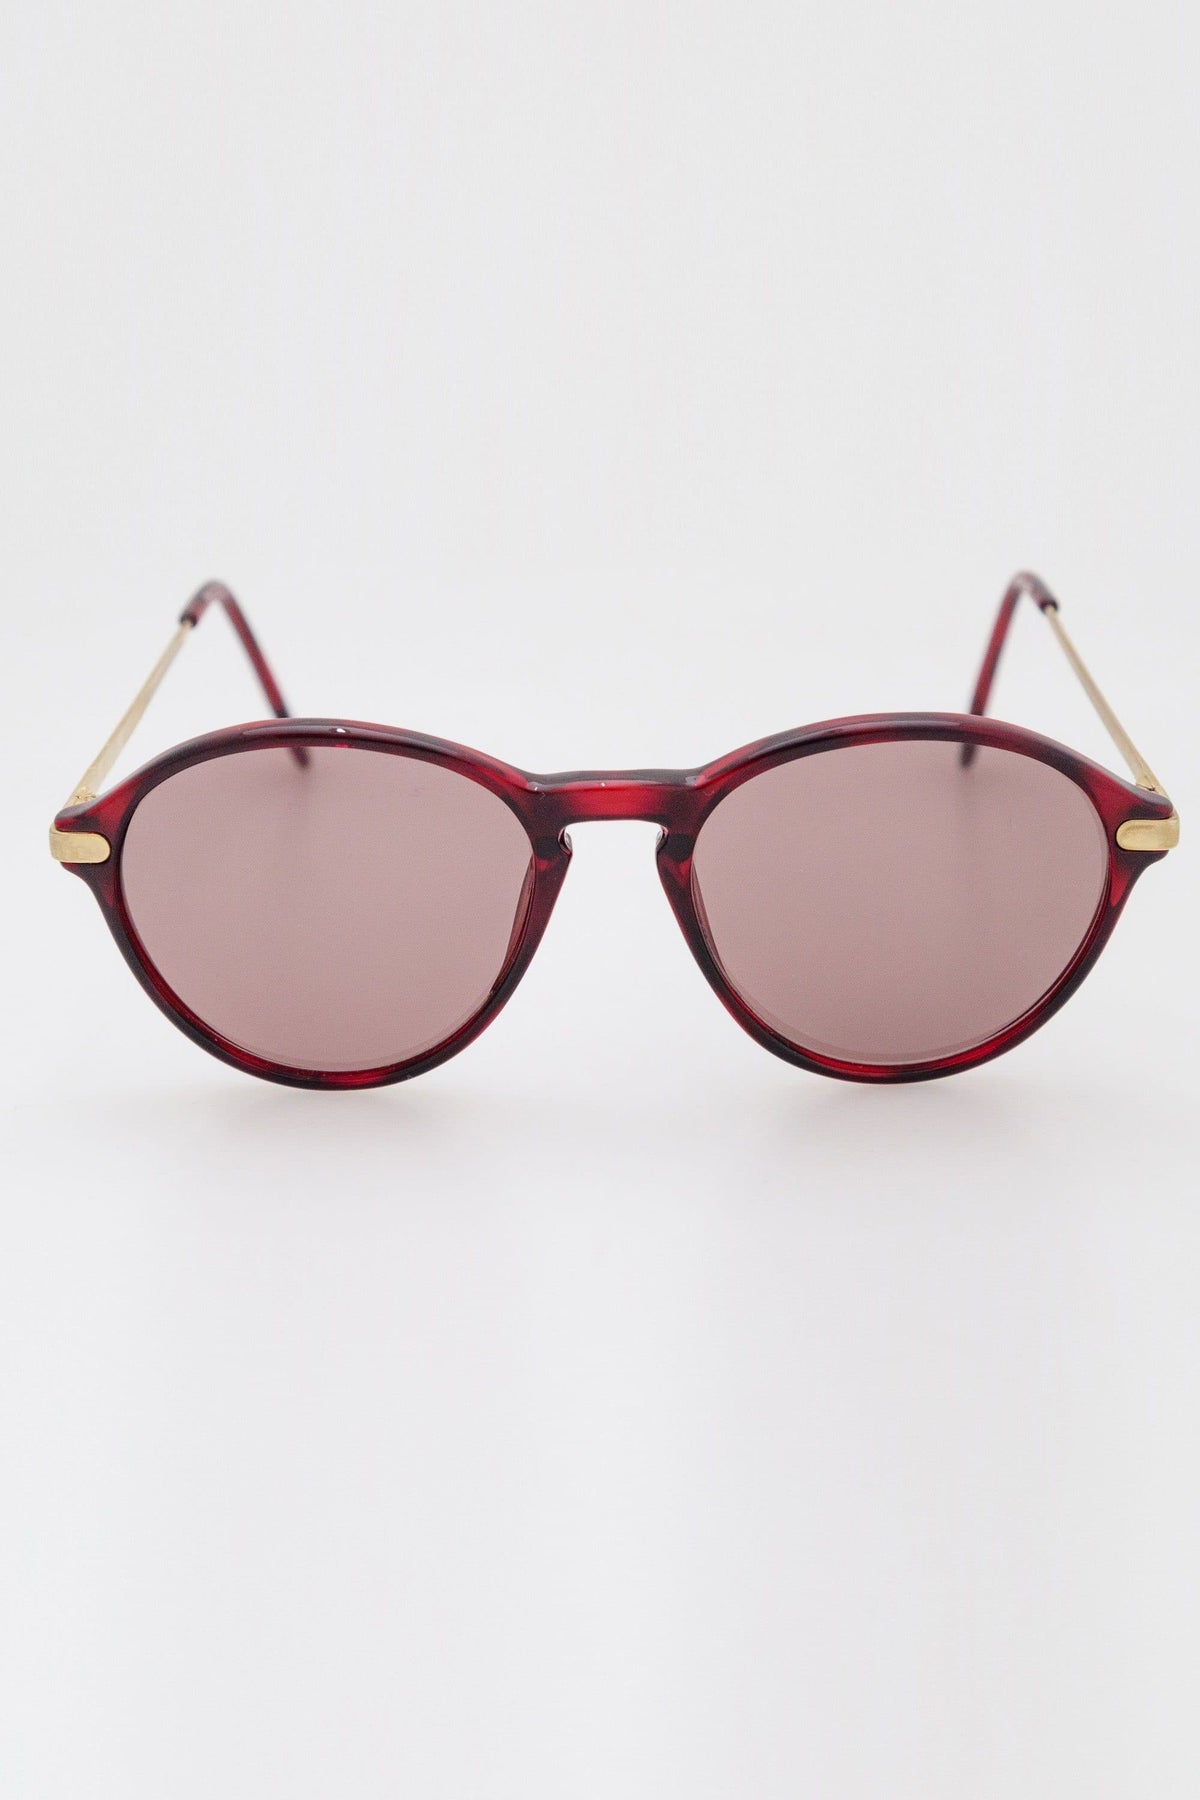 CHSWTHSG - Chatsworth Vintage Glasses